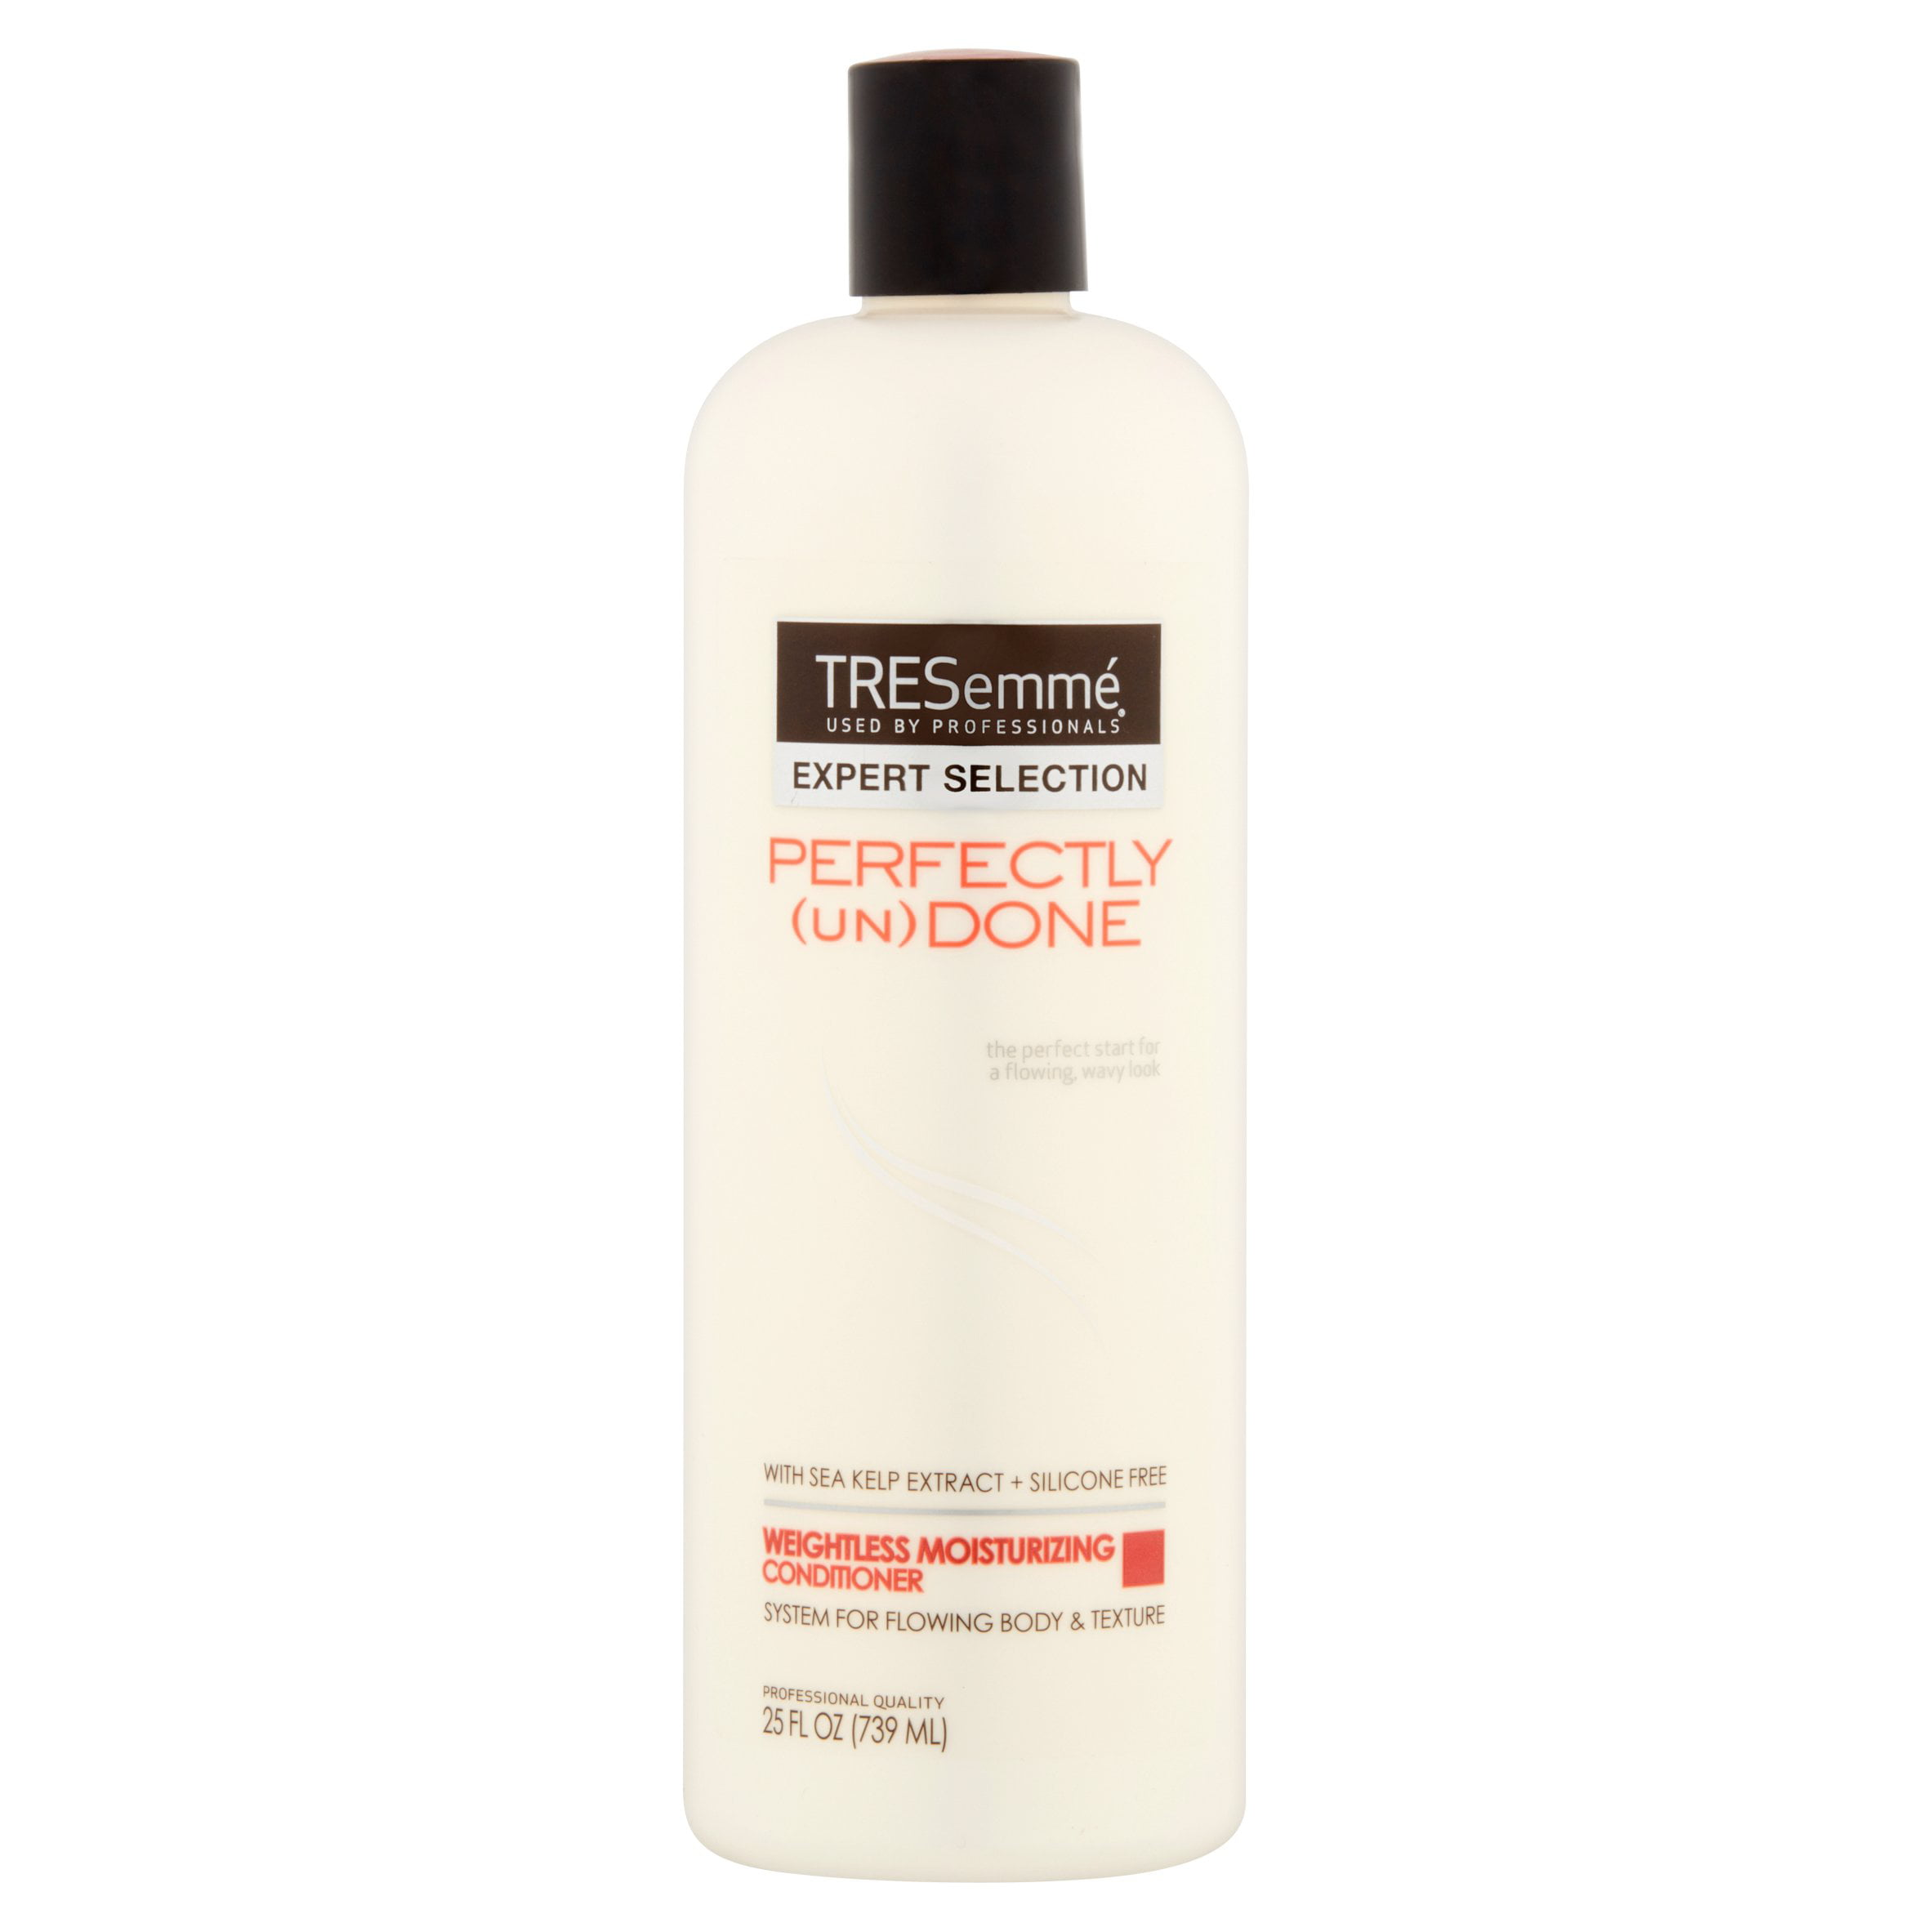 TRESemme Perfectly (un)Done Weightless Moisturizing Conditioner, 25 fl oz